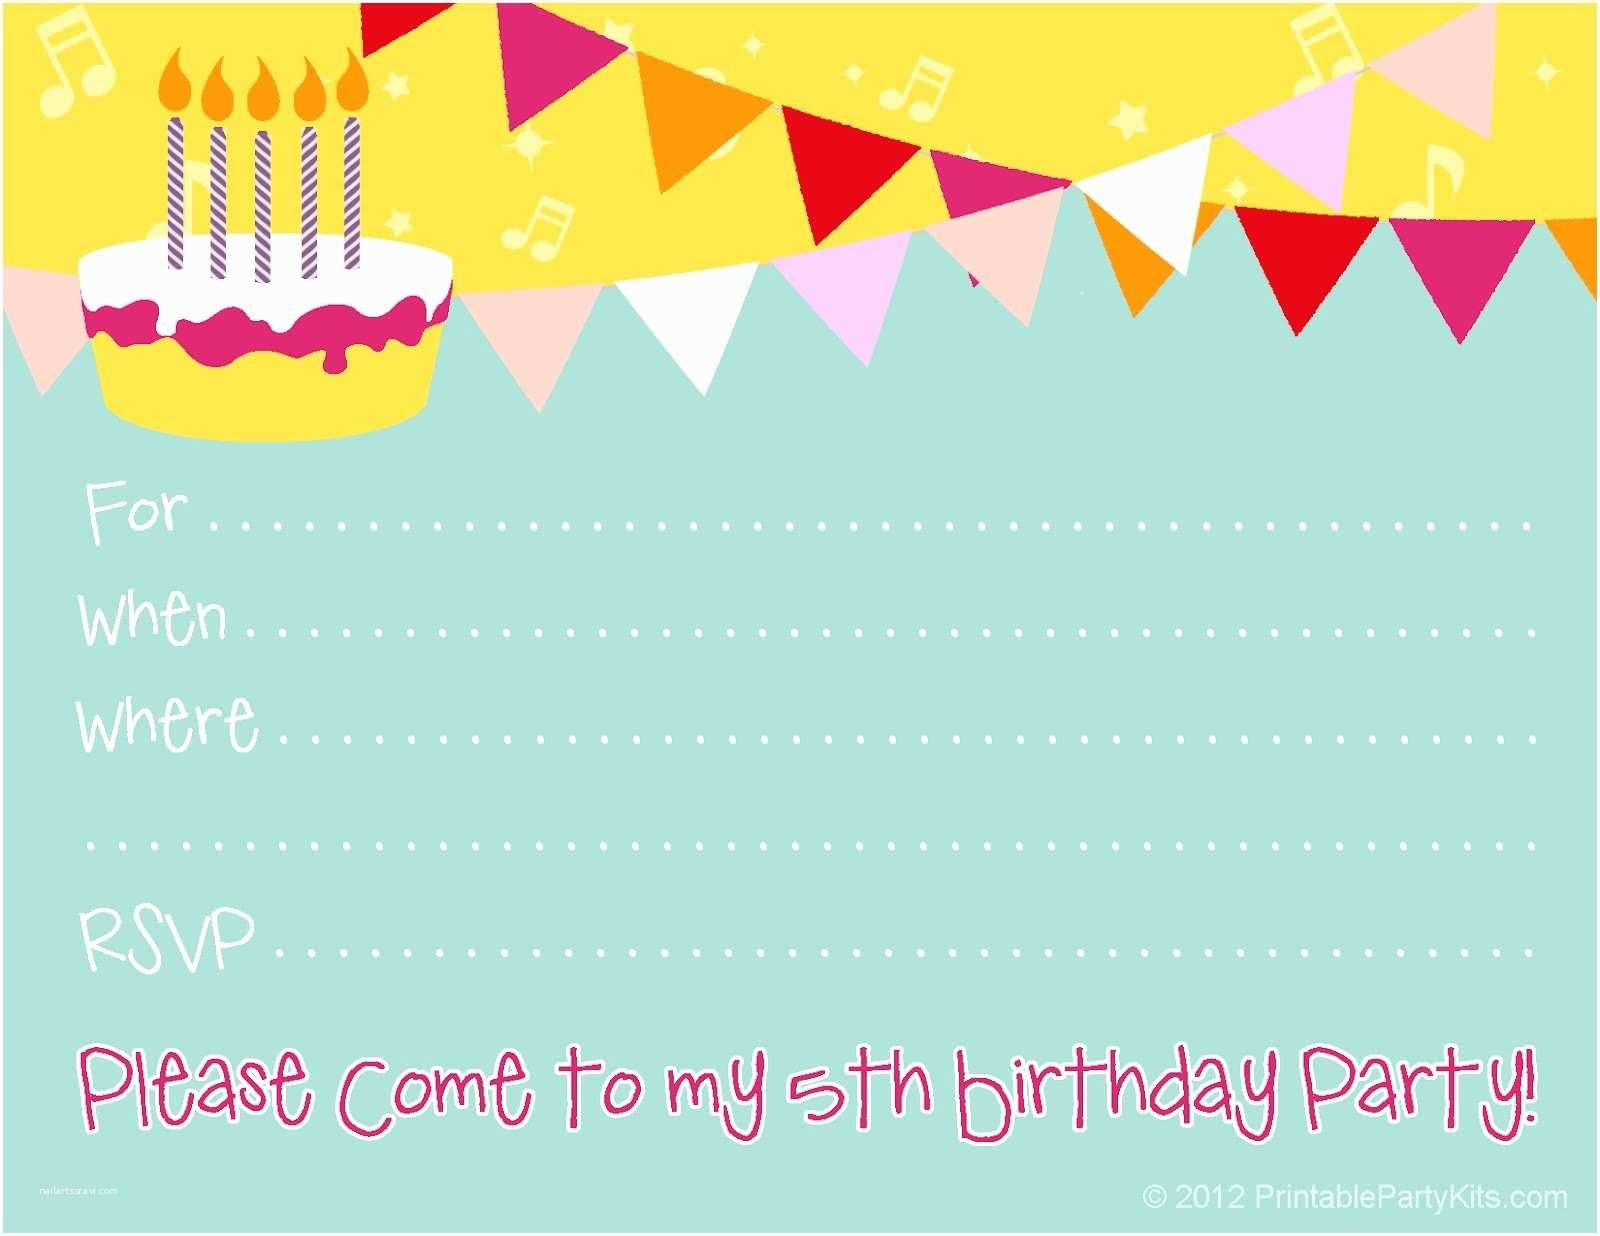 Birthday Party Invitations Free Free Birthday Party Invitations for Girl – Bagvania Free